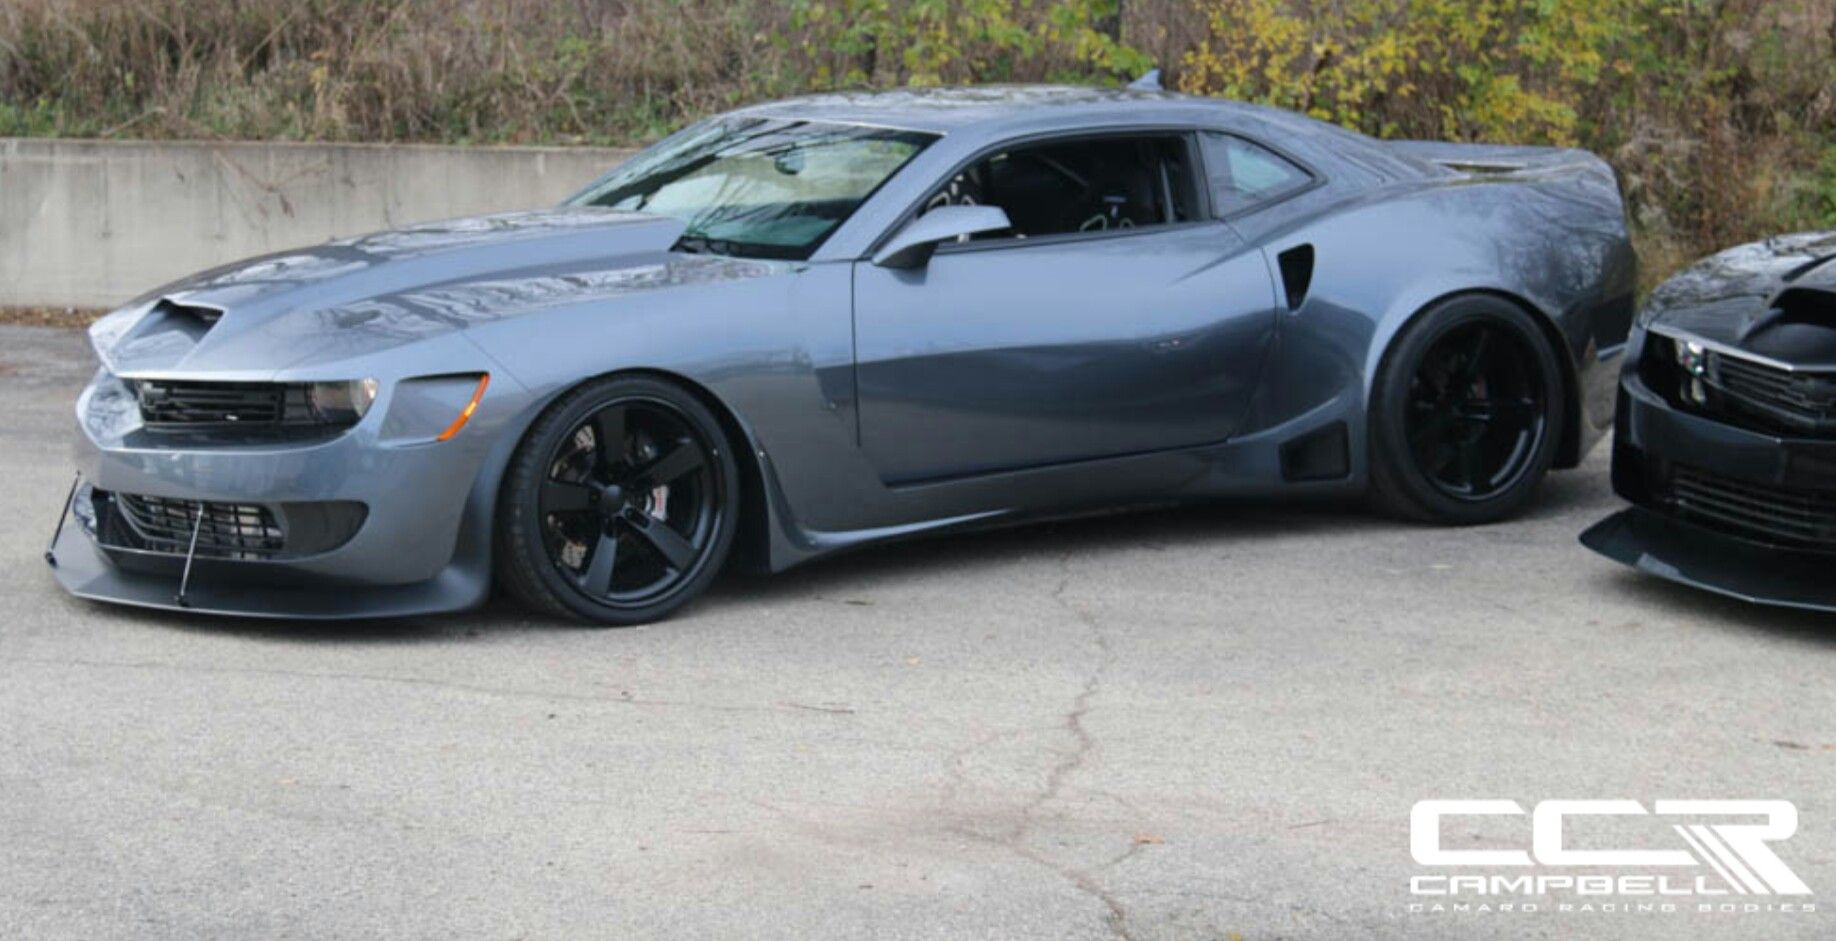 Ccr Camaro Zl1 Wide Body Kit All Muscle Cars Cars